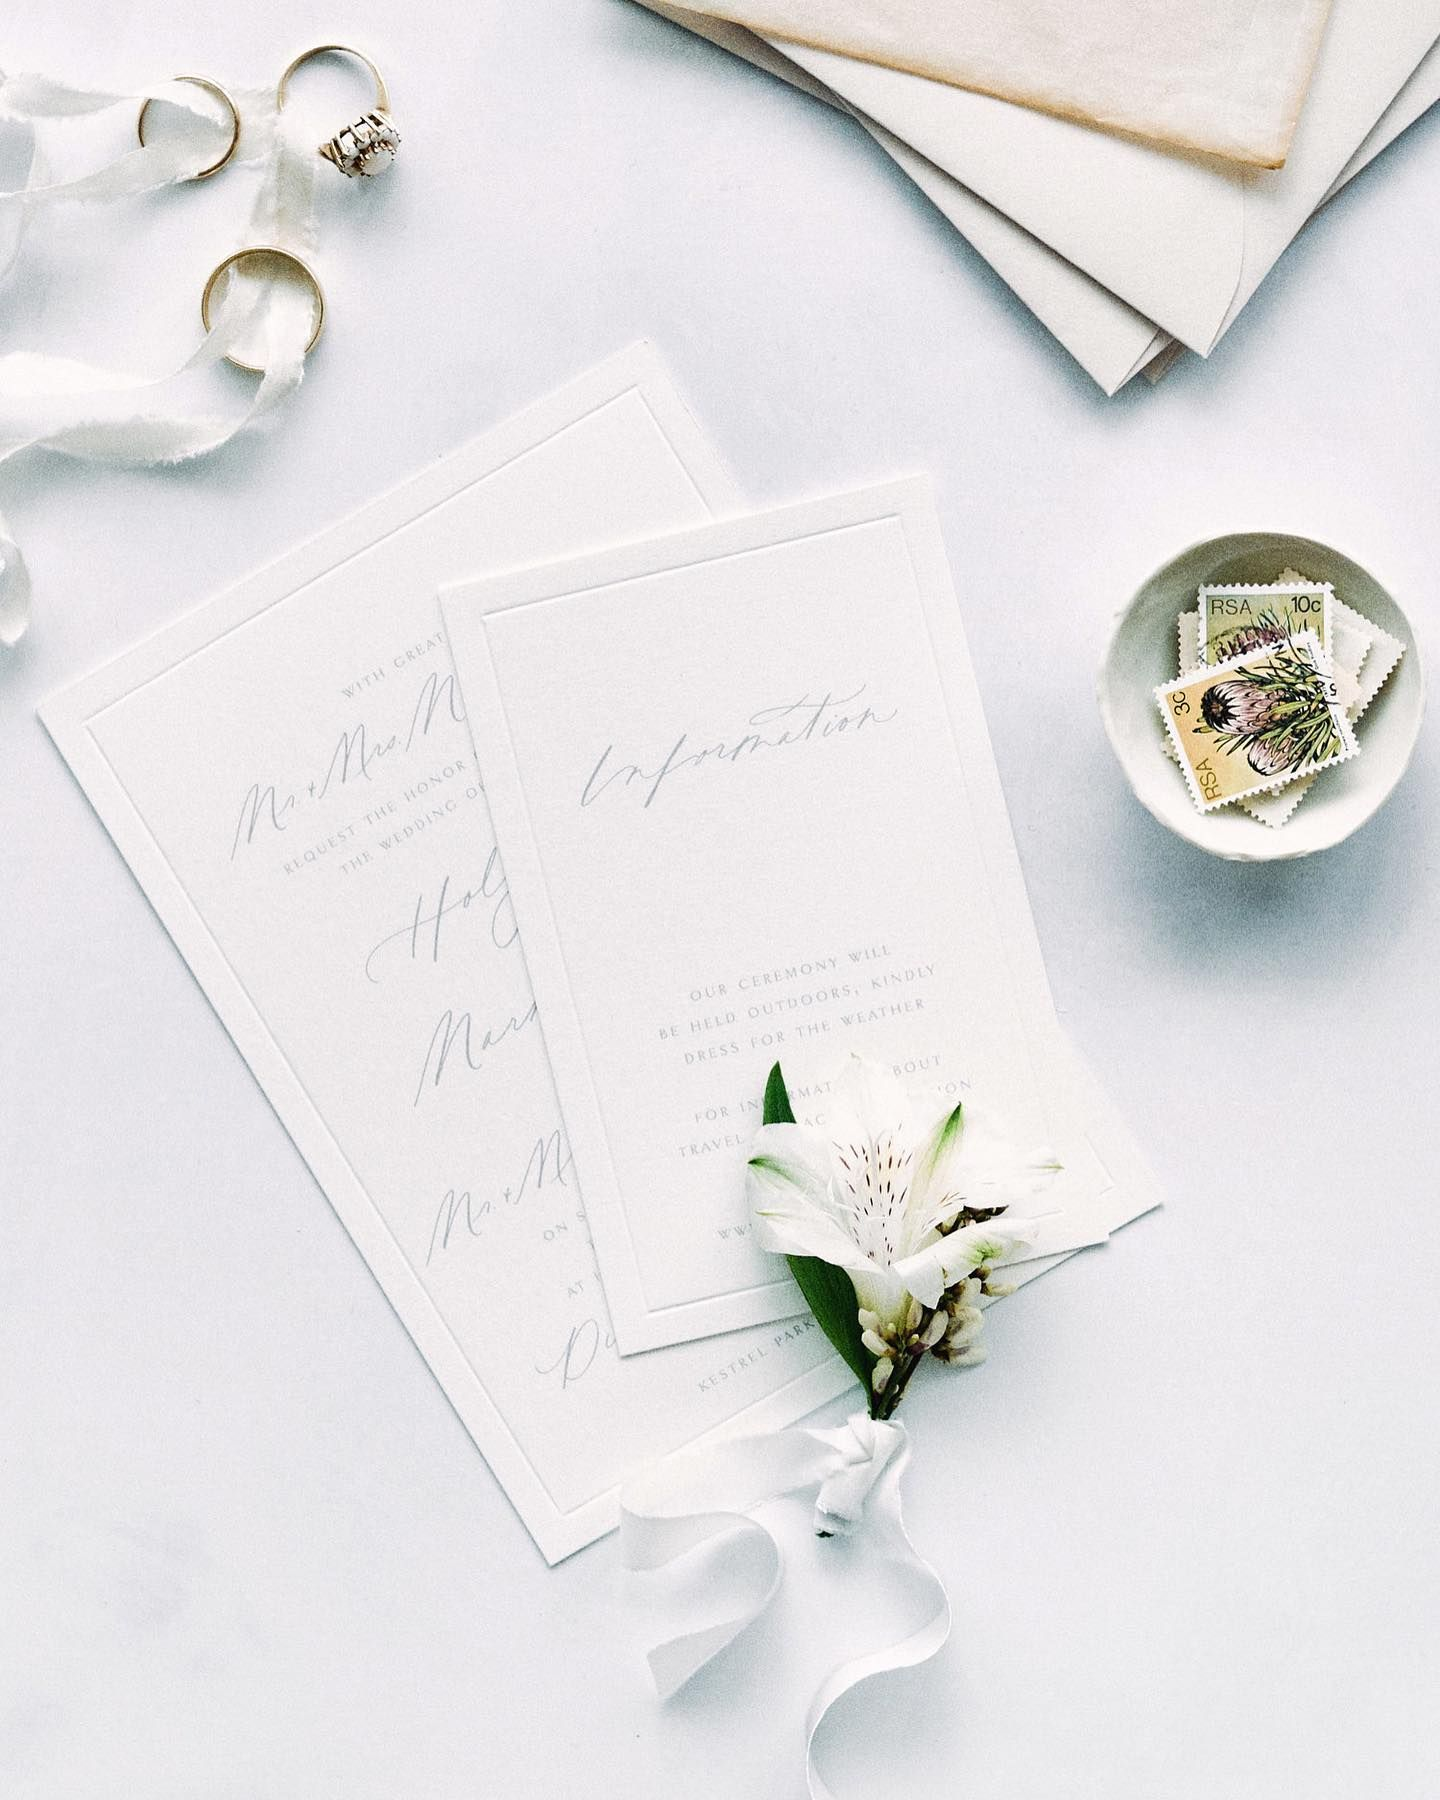 I love the subtle beauty of a blind embossed border, it's